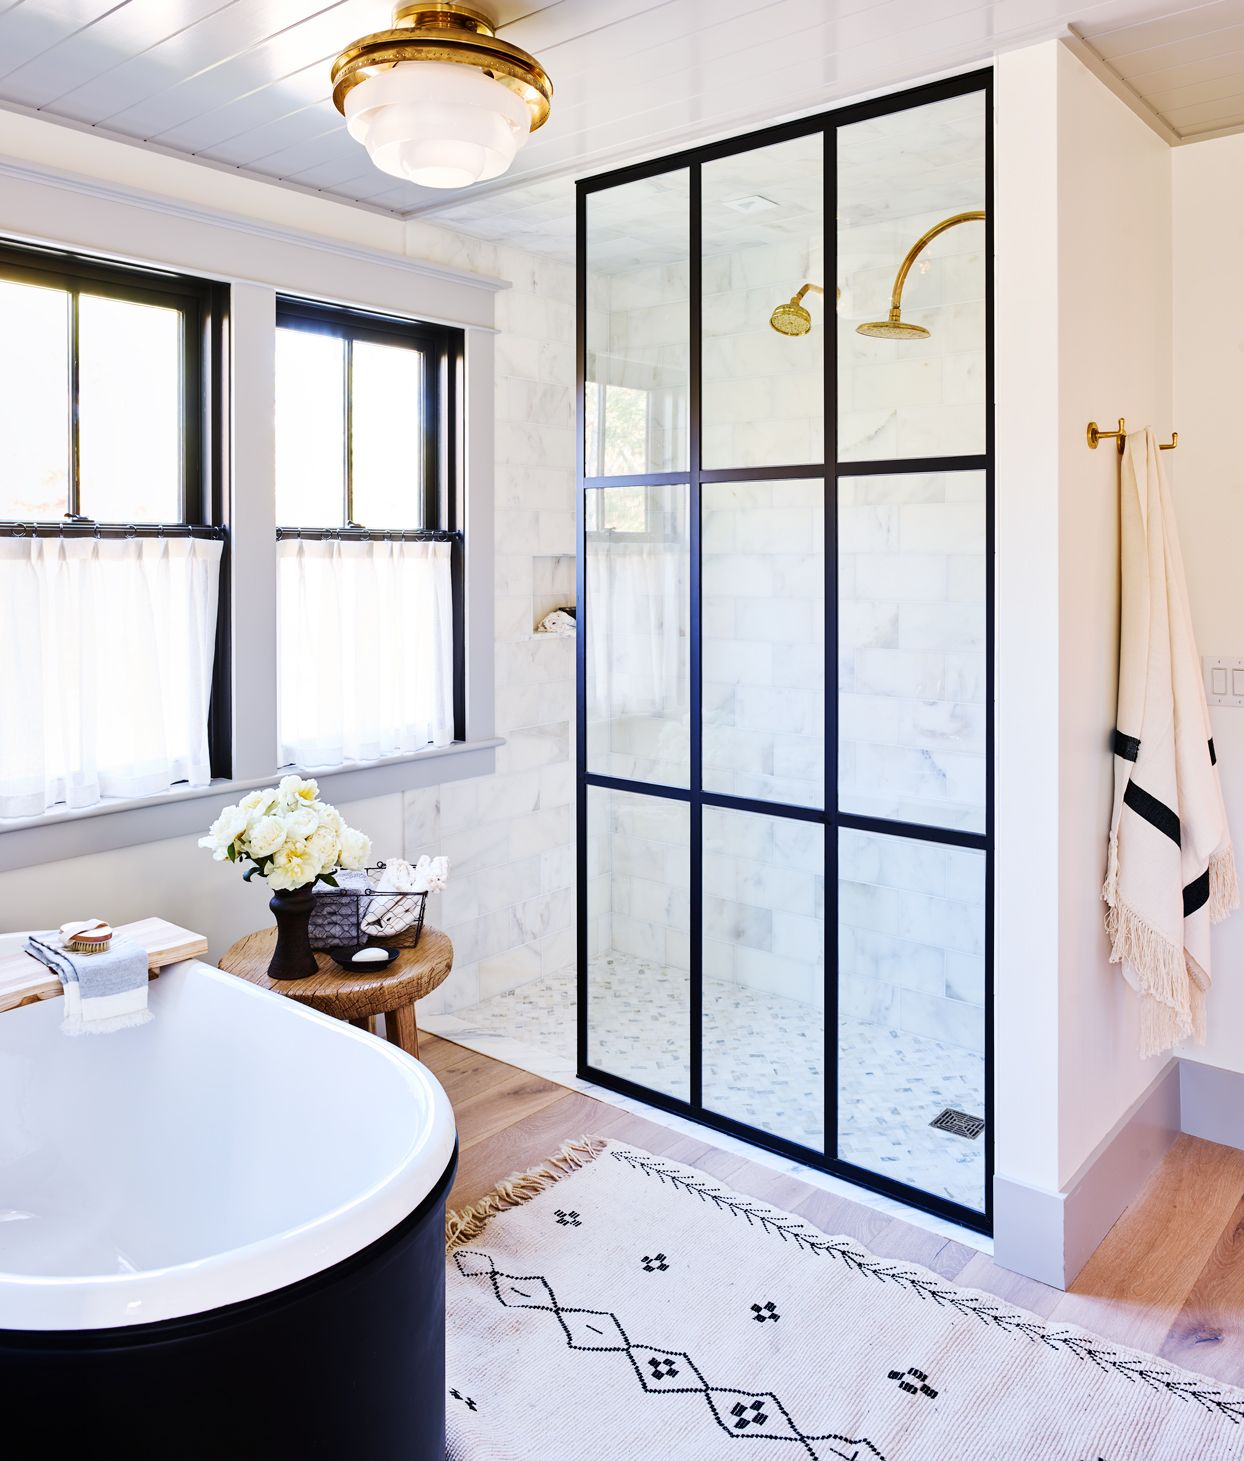 How To Remove Hard Water Stains From A Glass Shower In 2020 Home Bathroom Decor Bathrooms Remodel